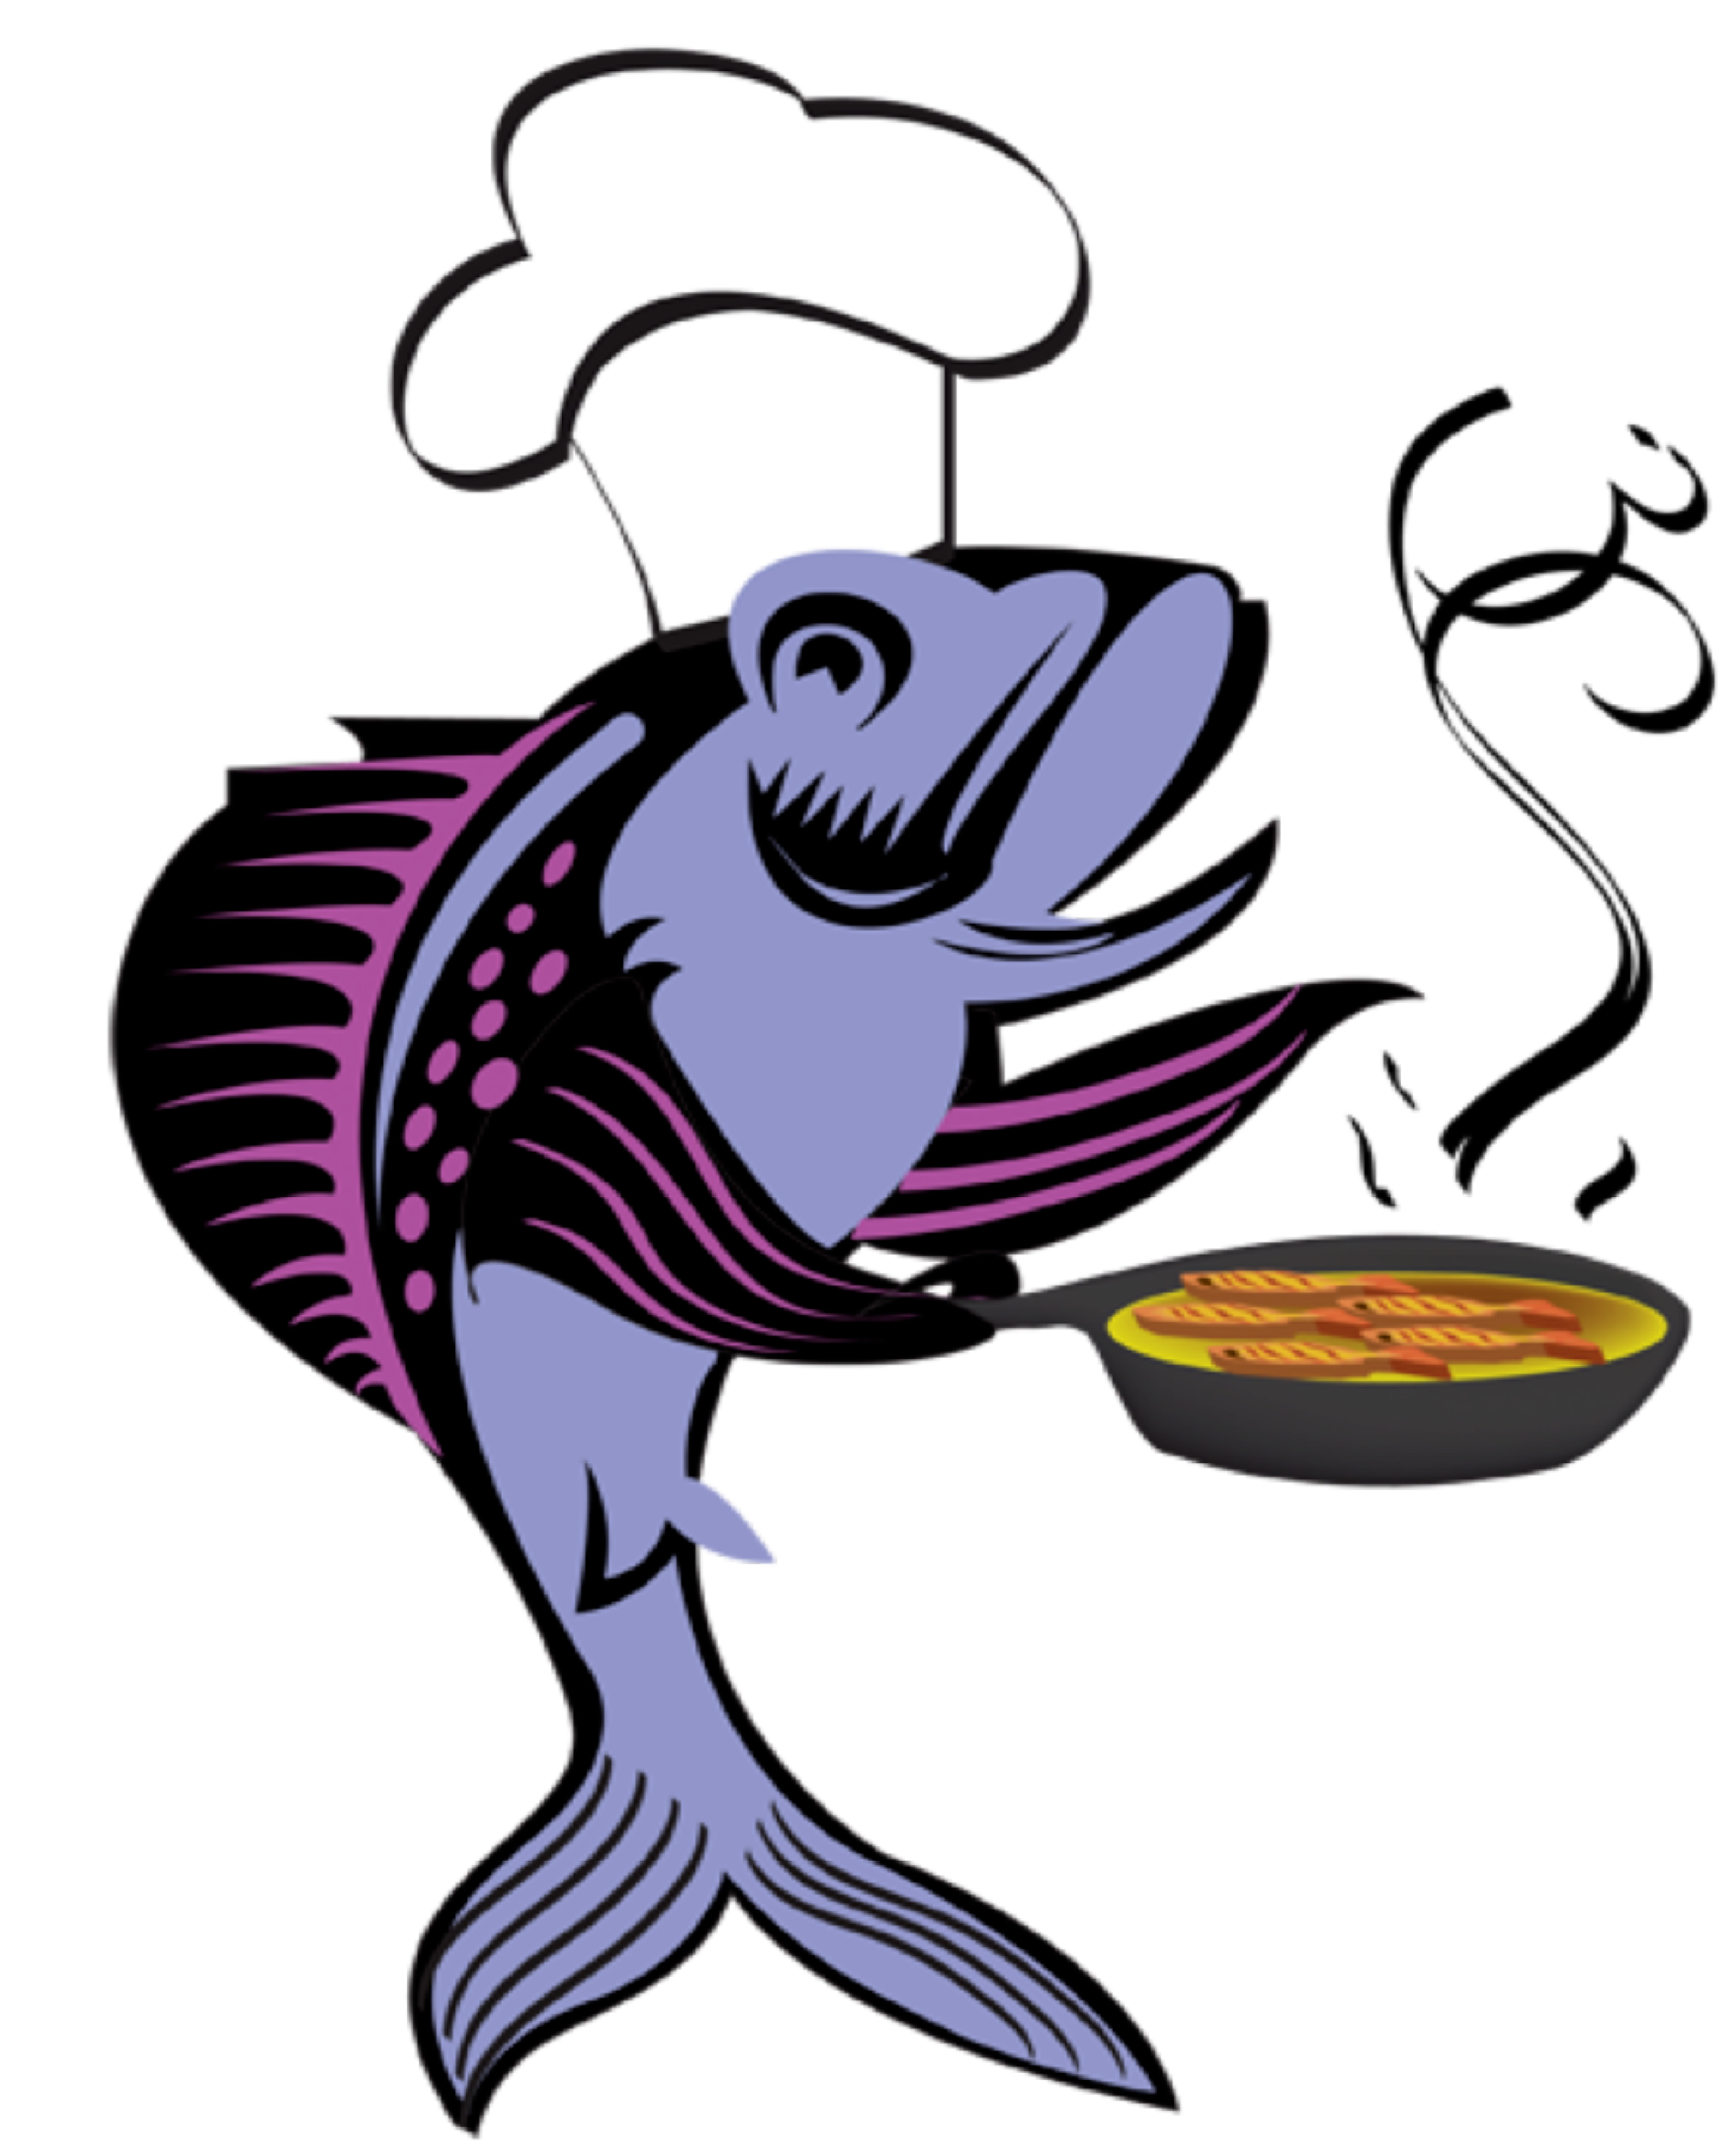 Fish Fry Clipart Images All For Photo Do-Fish Fry Clipart Images All For Photo Dot Com-8